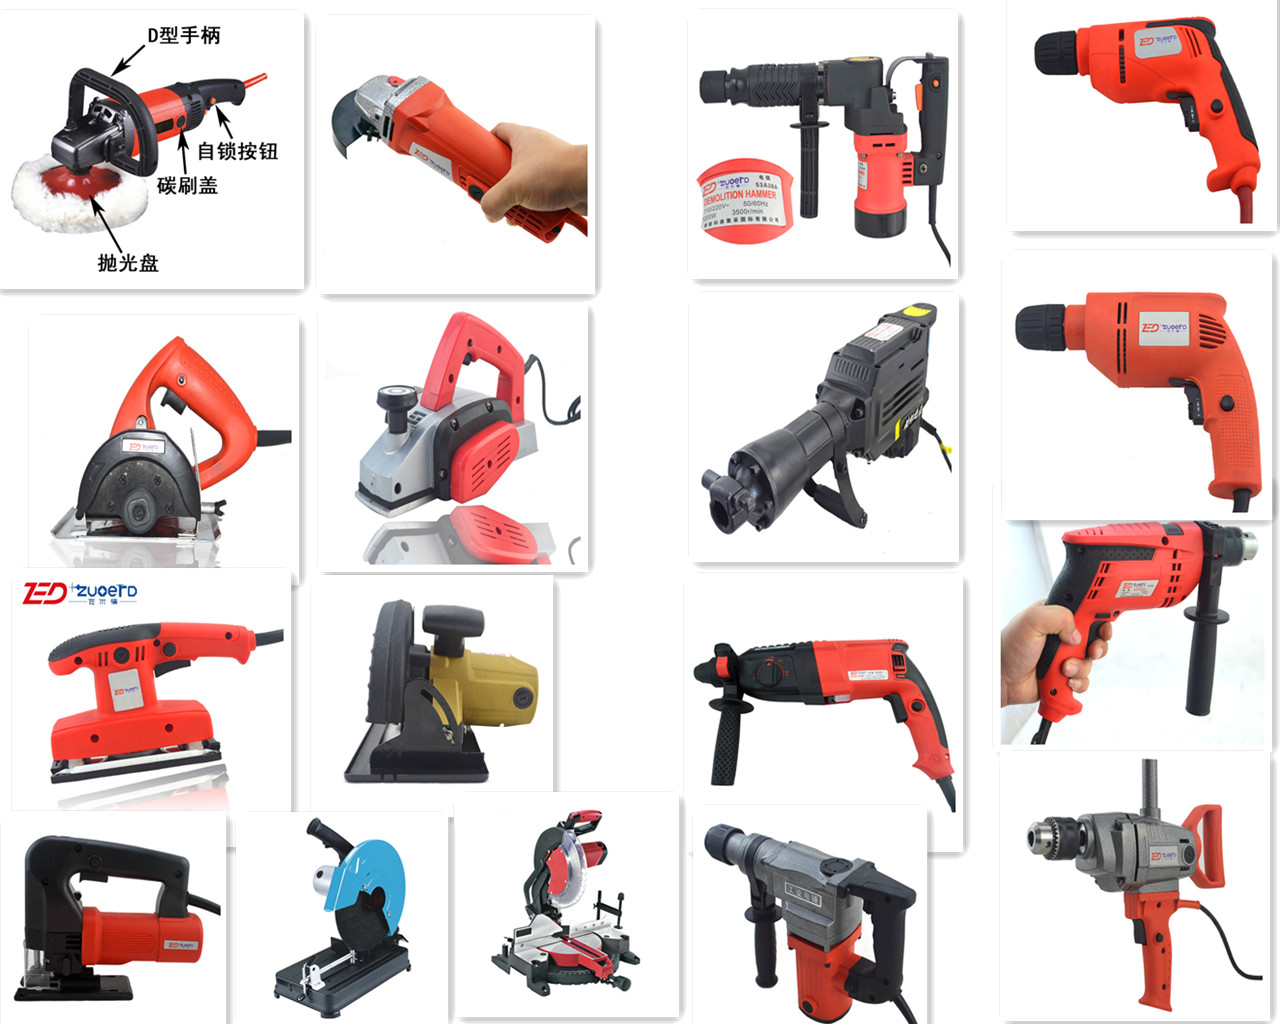 us power and hand tools industry China hand tool manufacturing industry, 2016 china hand tool manufacturing industry, 2016 is valuable for anyone who wants to invest in the hand tool manufacturing - market research report and industry analysis - 9853768.